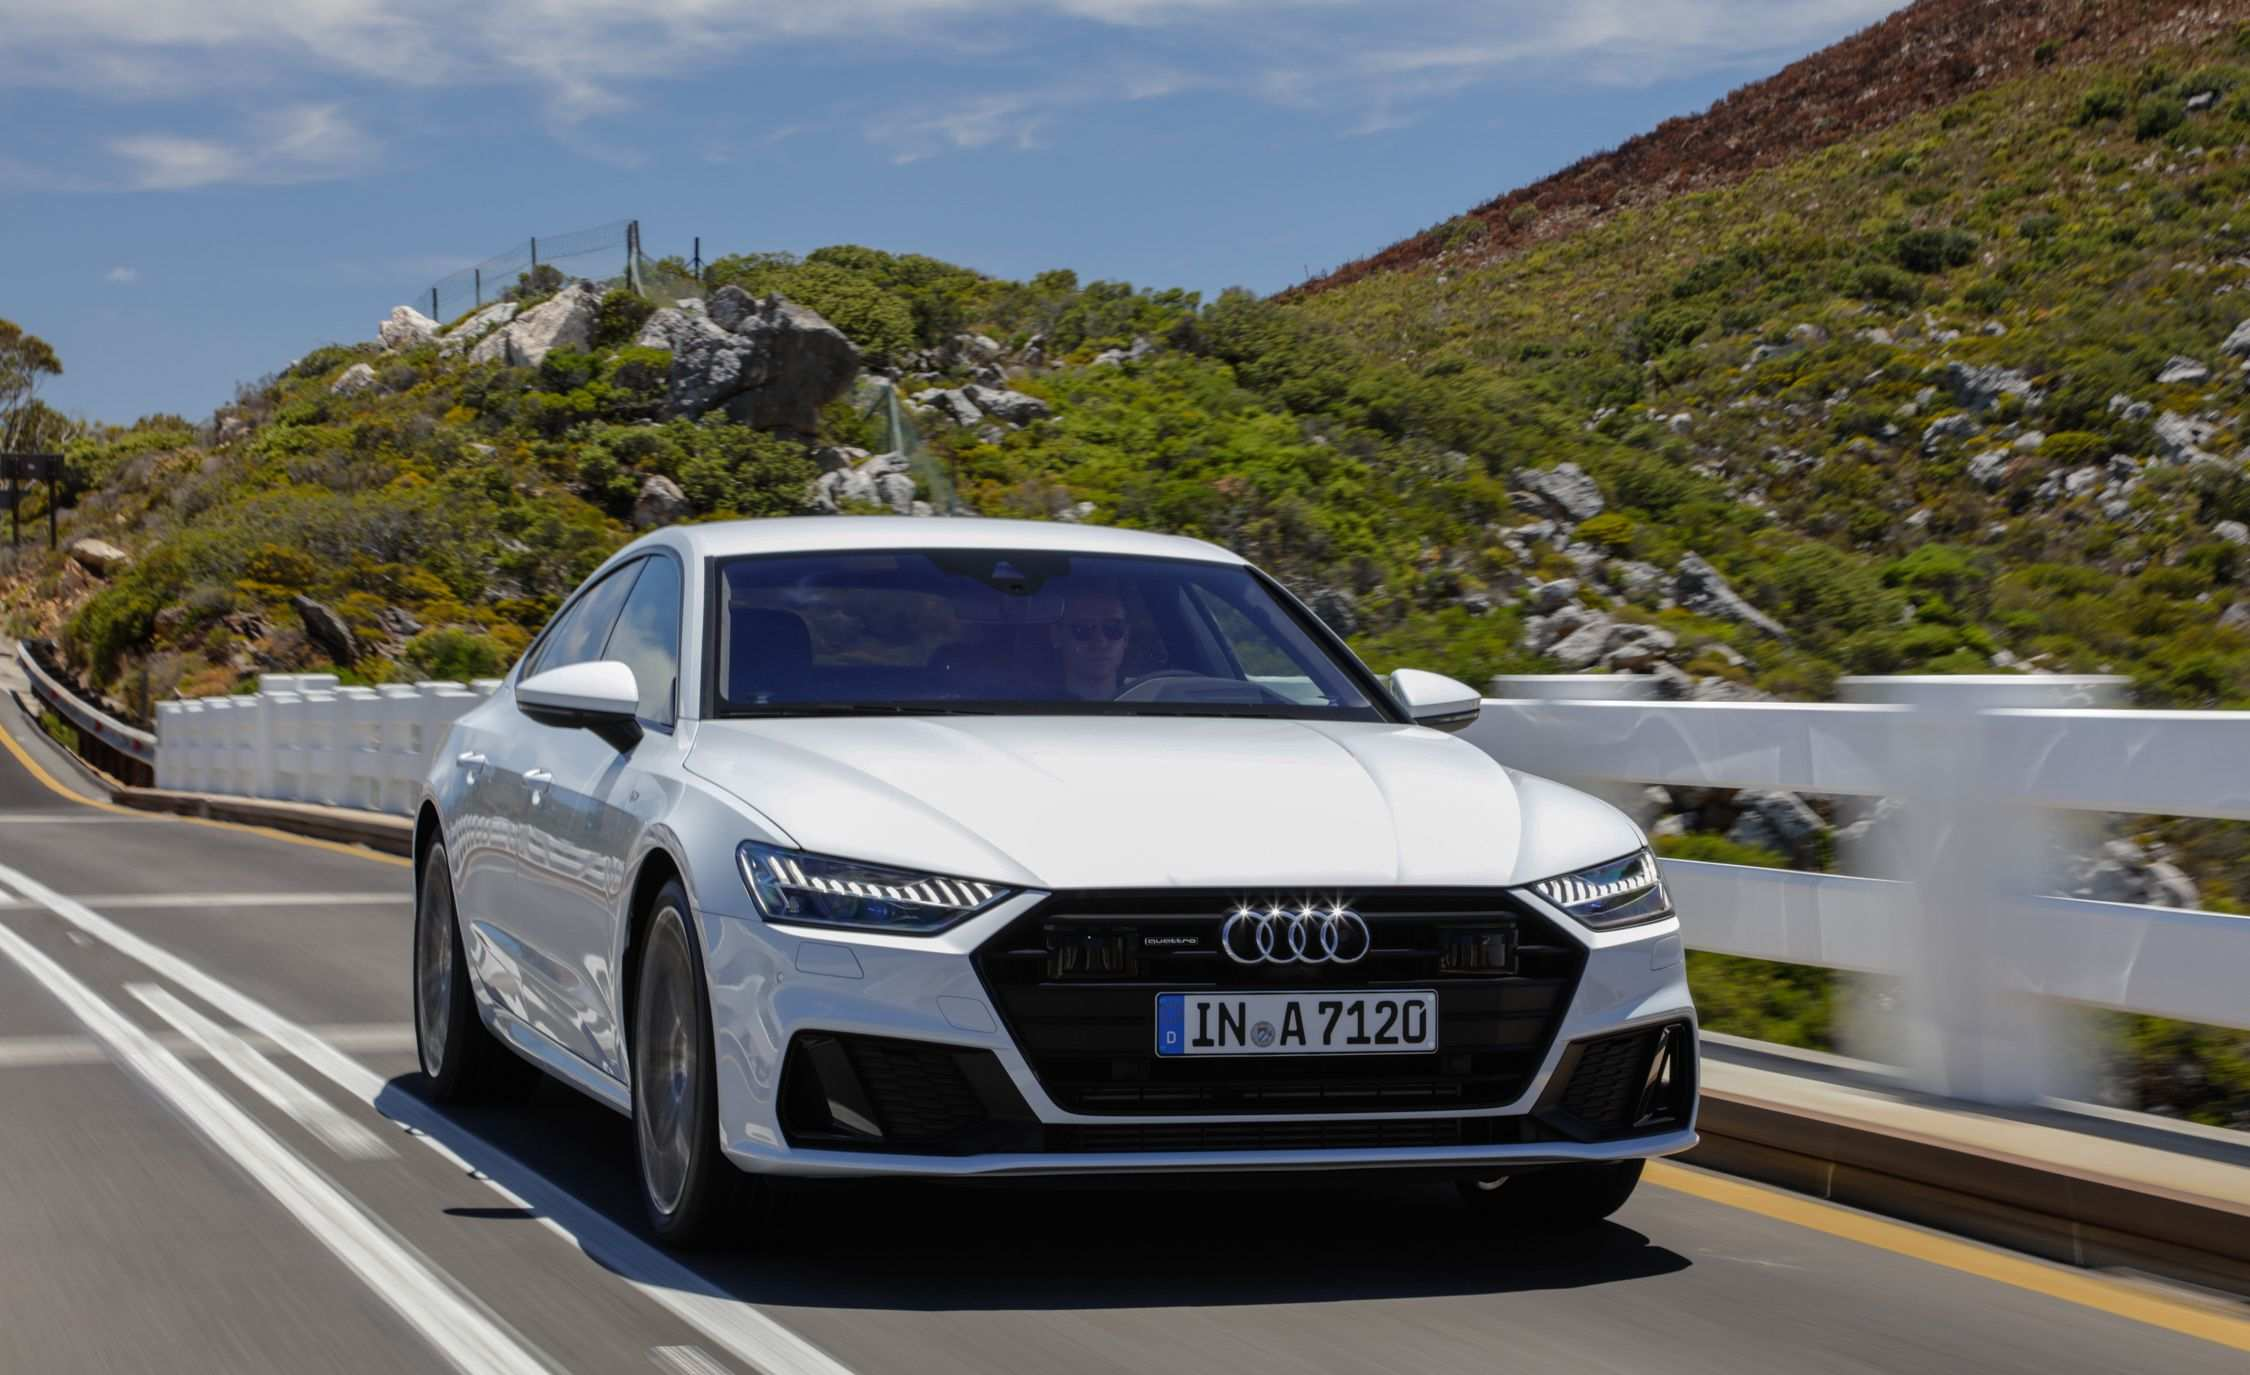 74 New 2019 Audi A7 Msrp Redesign and Concept with 2019 Audi A7 Msrp